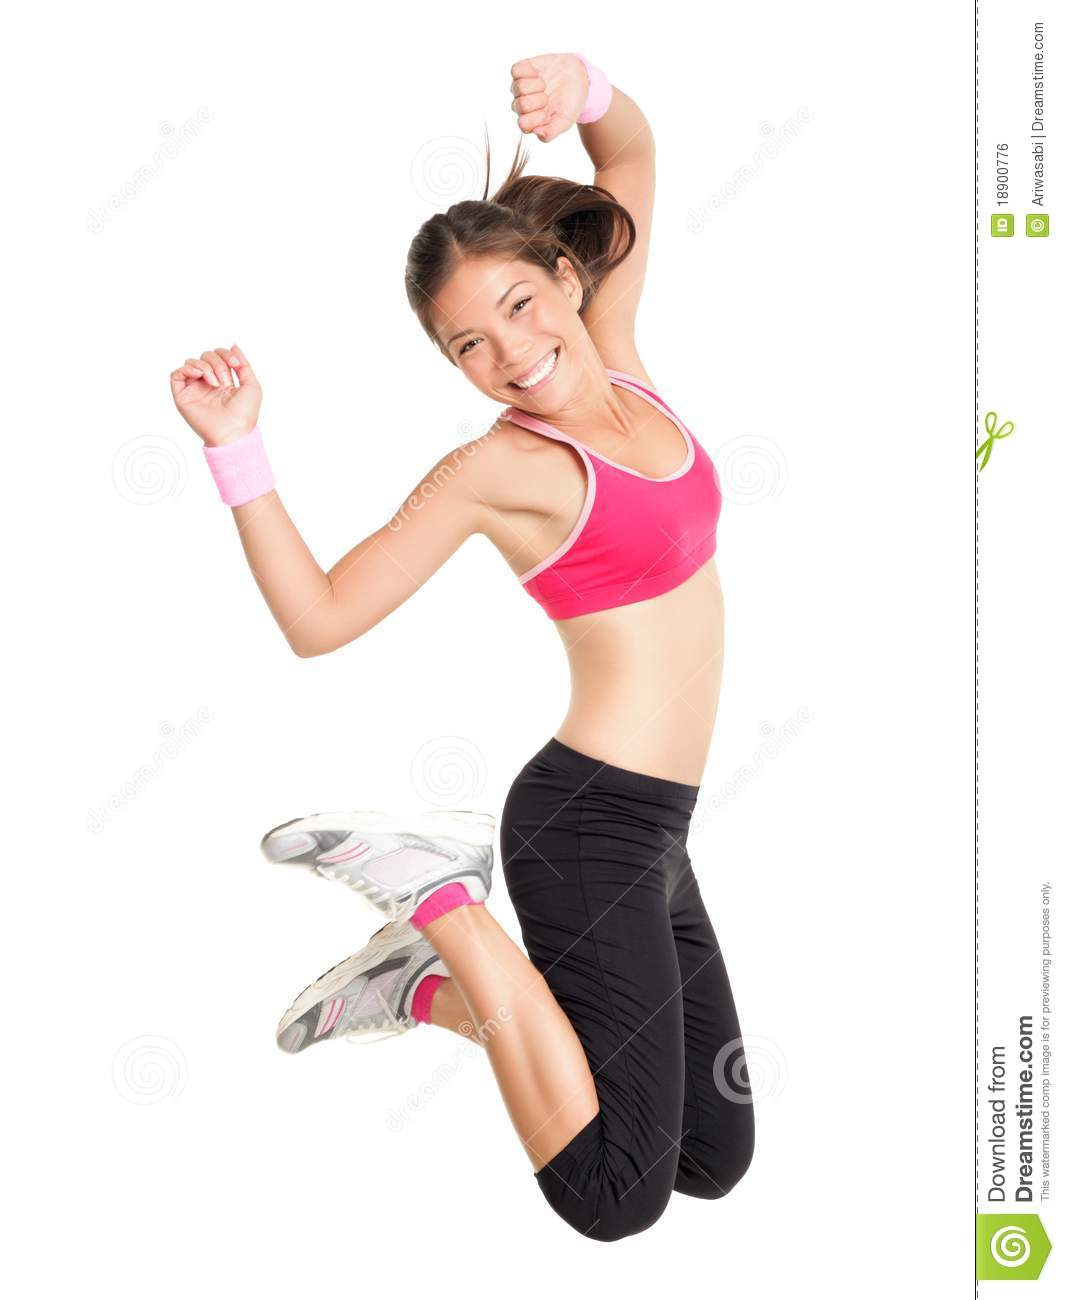 56a29e5e4a24f Weight Loss Fitness Woman Jumping Stock Photo - Image of multiracial ...